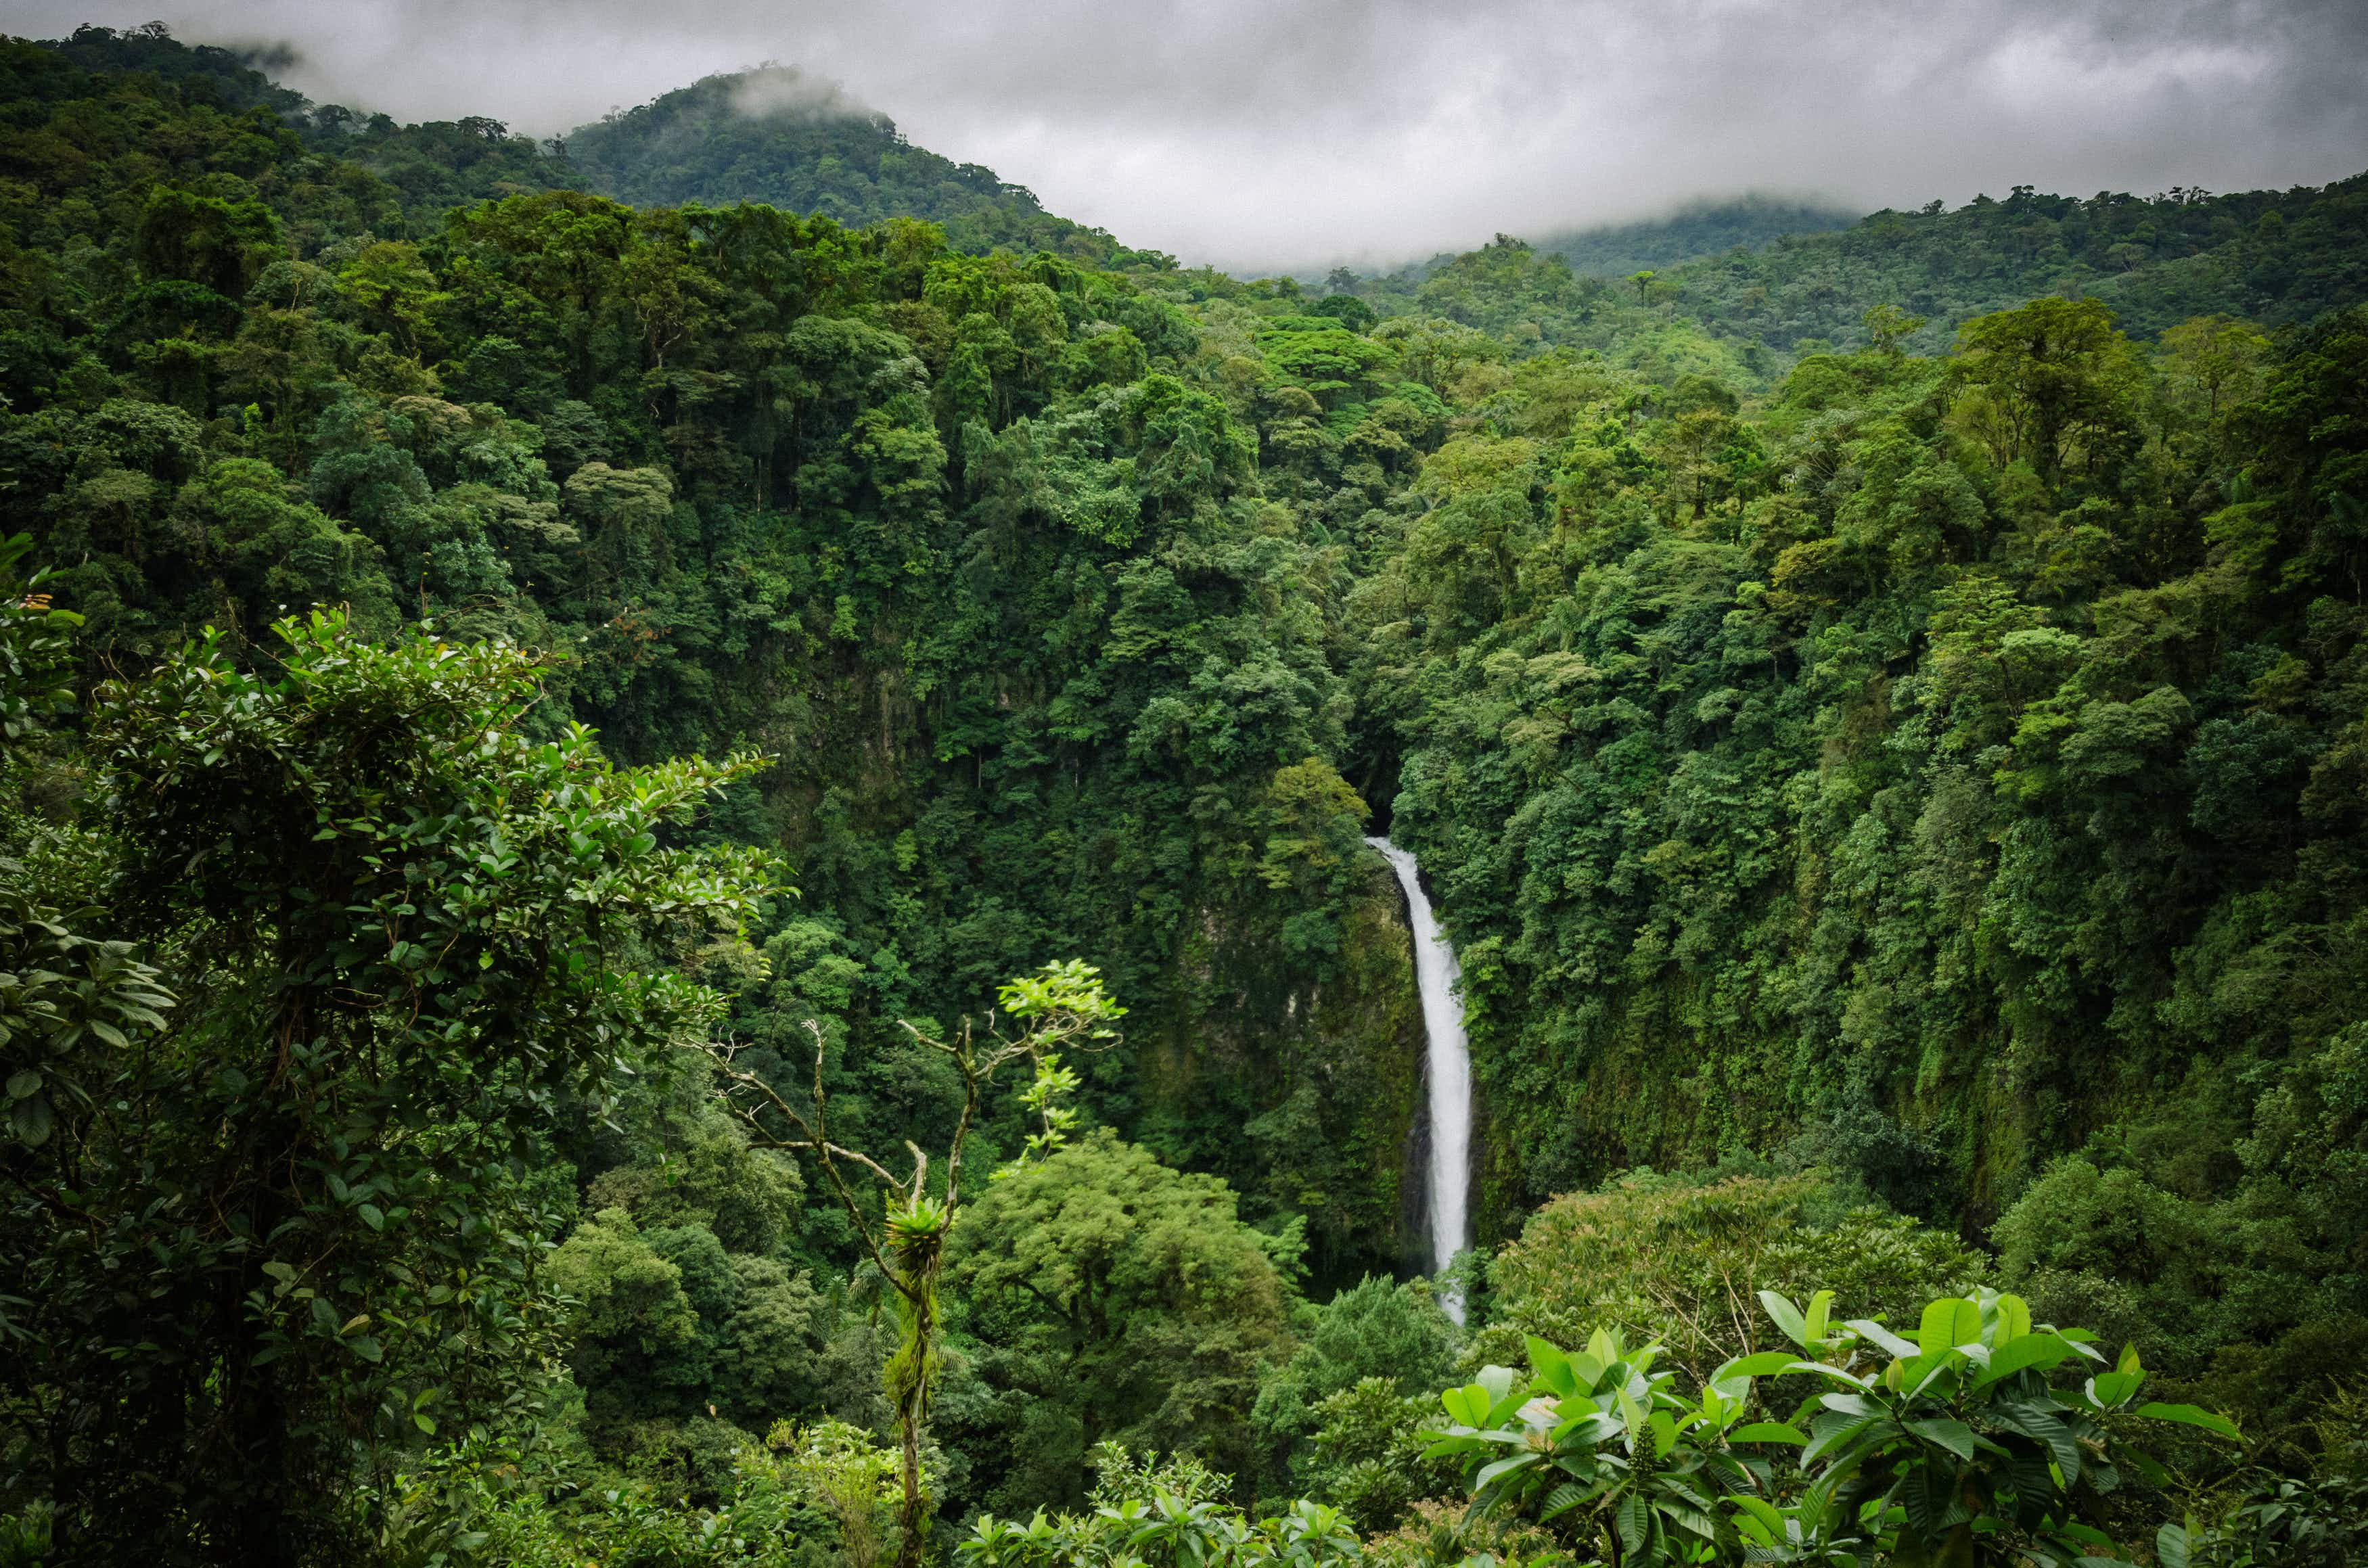 Costa Rica recognized by the UN for its efforts to combat climate change